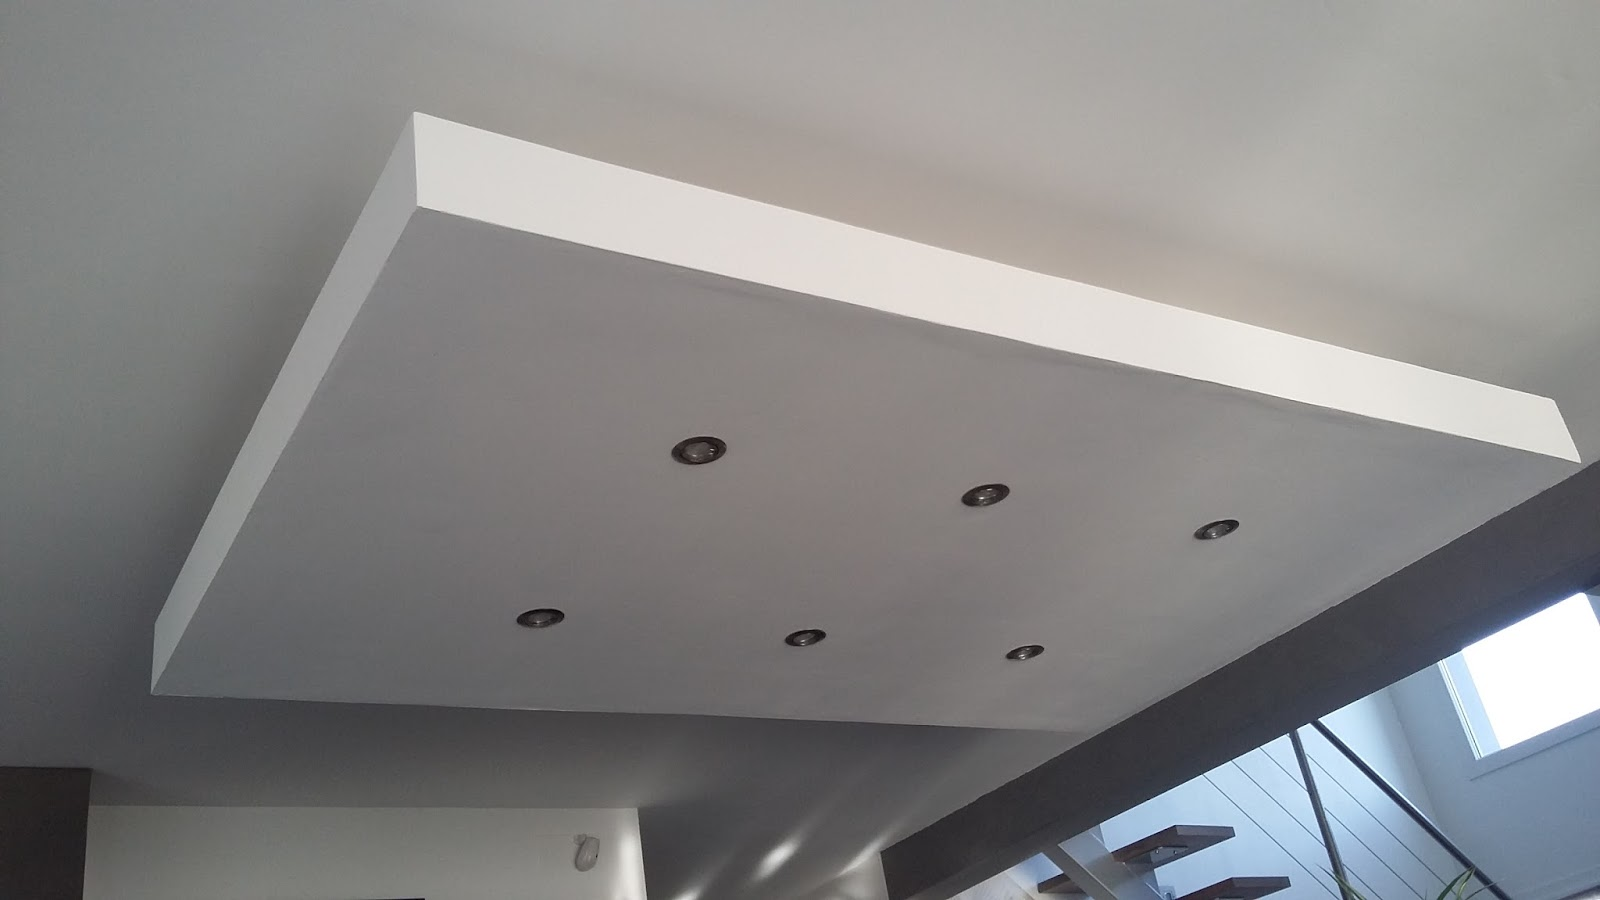 droch plafond descendu suspendu ilot central decaissement design spots caisson placo platre